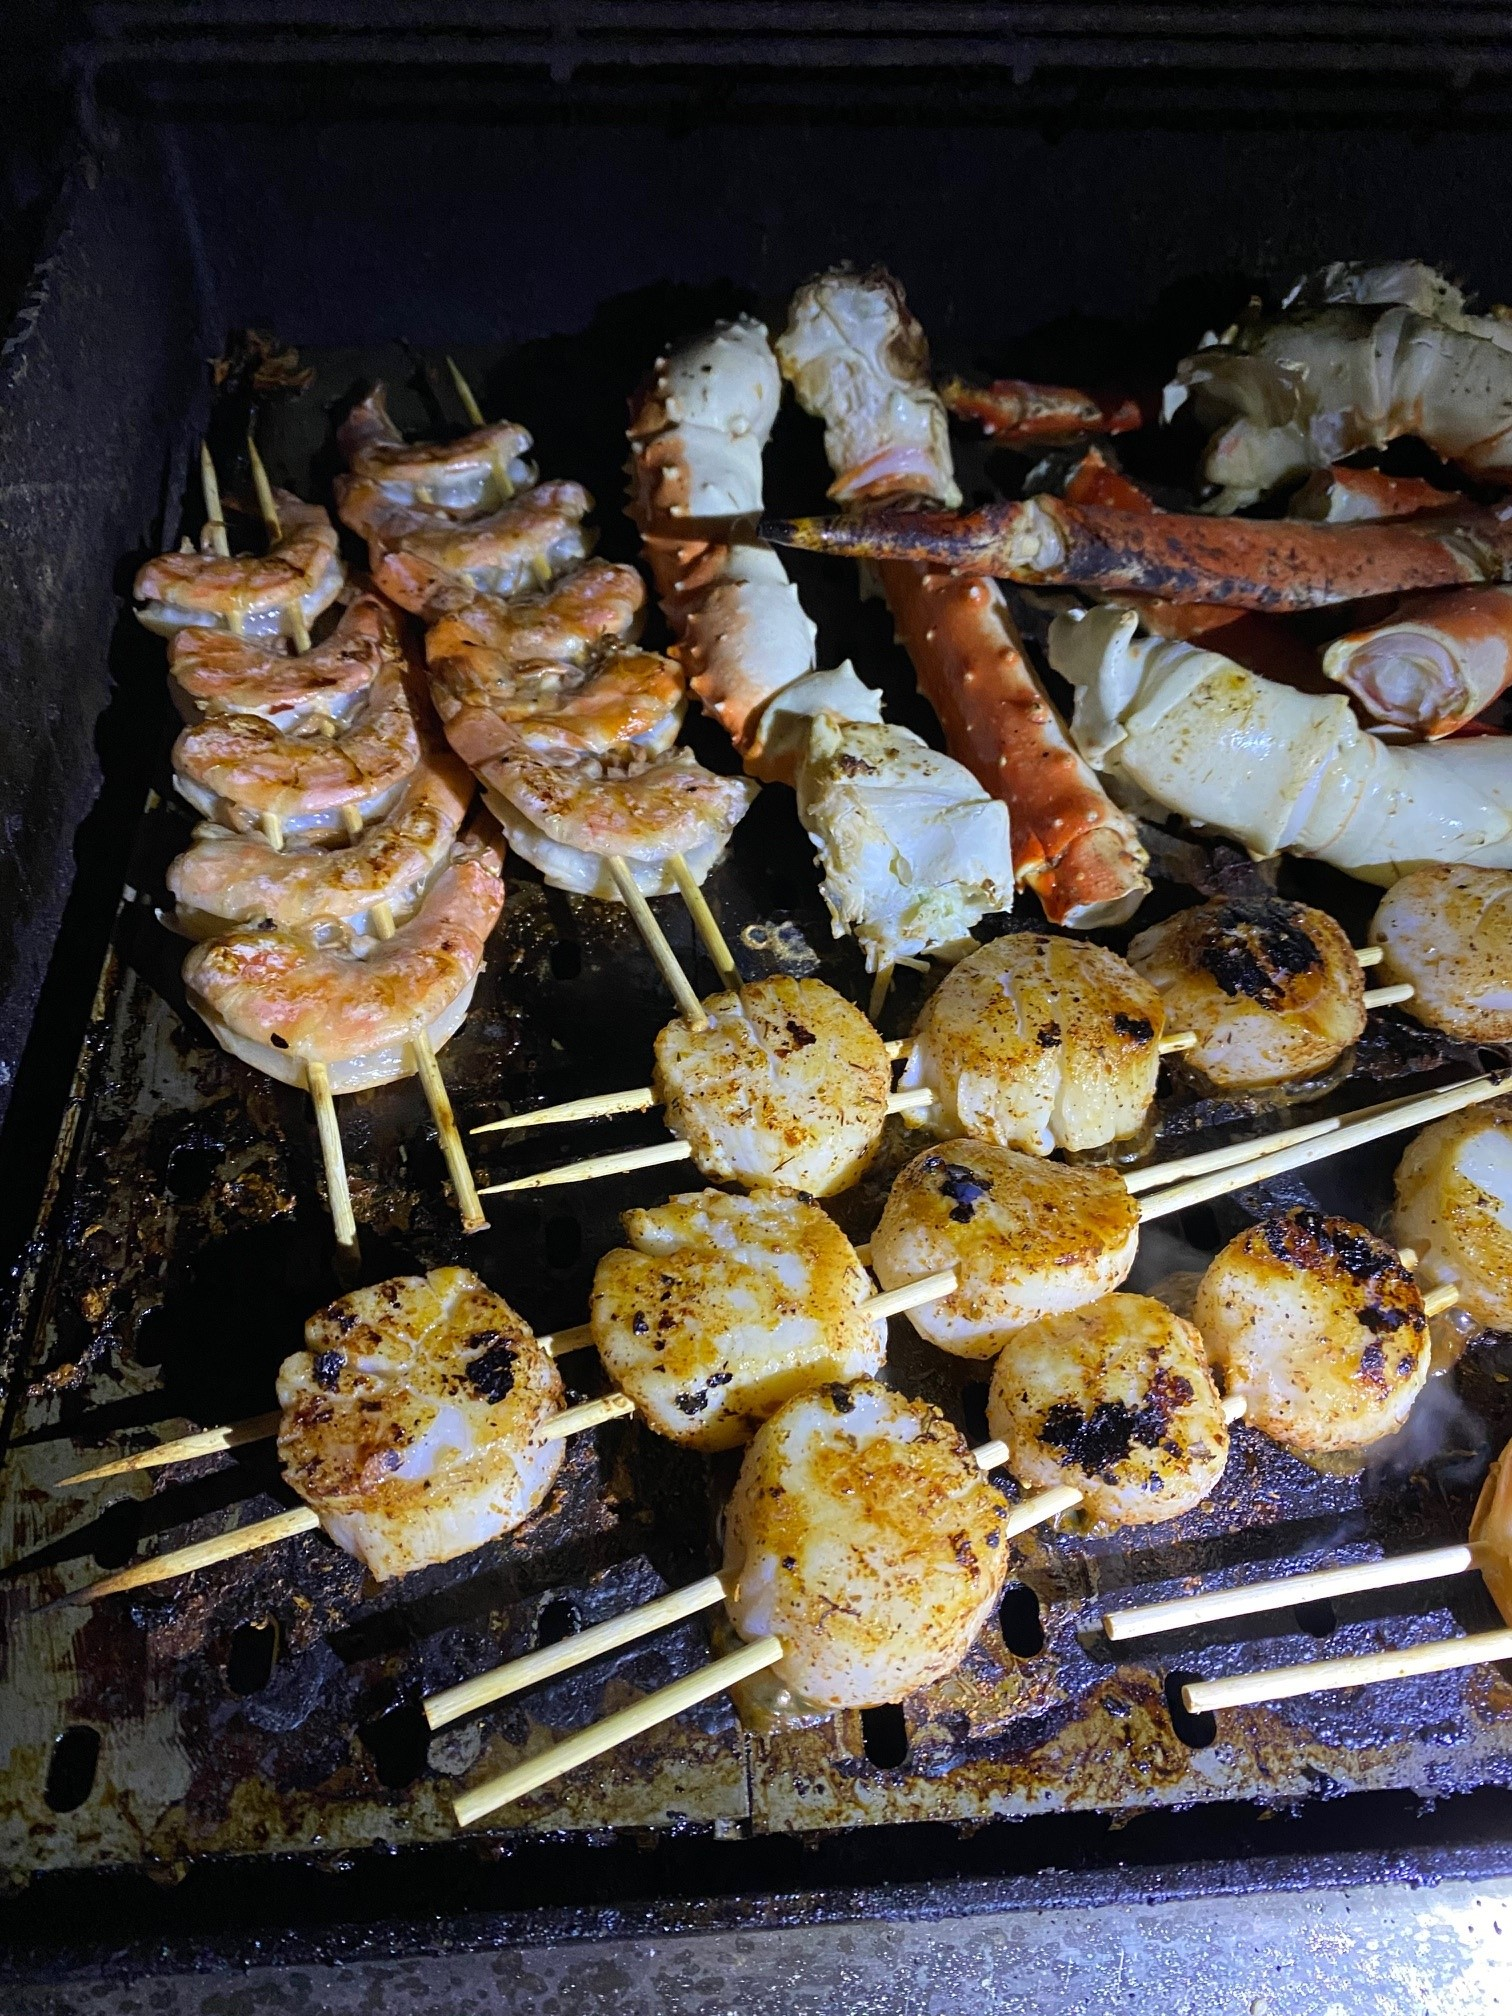 Seafood Medley on the Flat Side